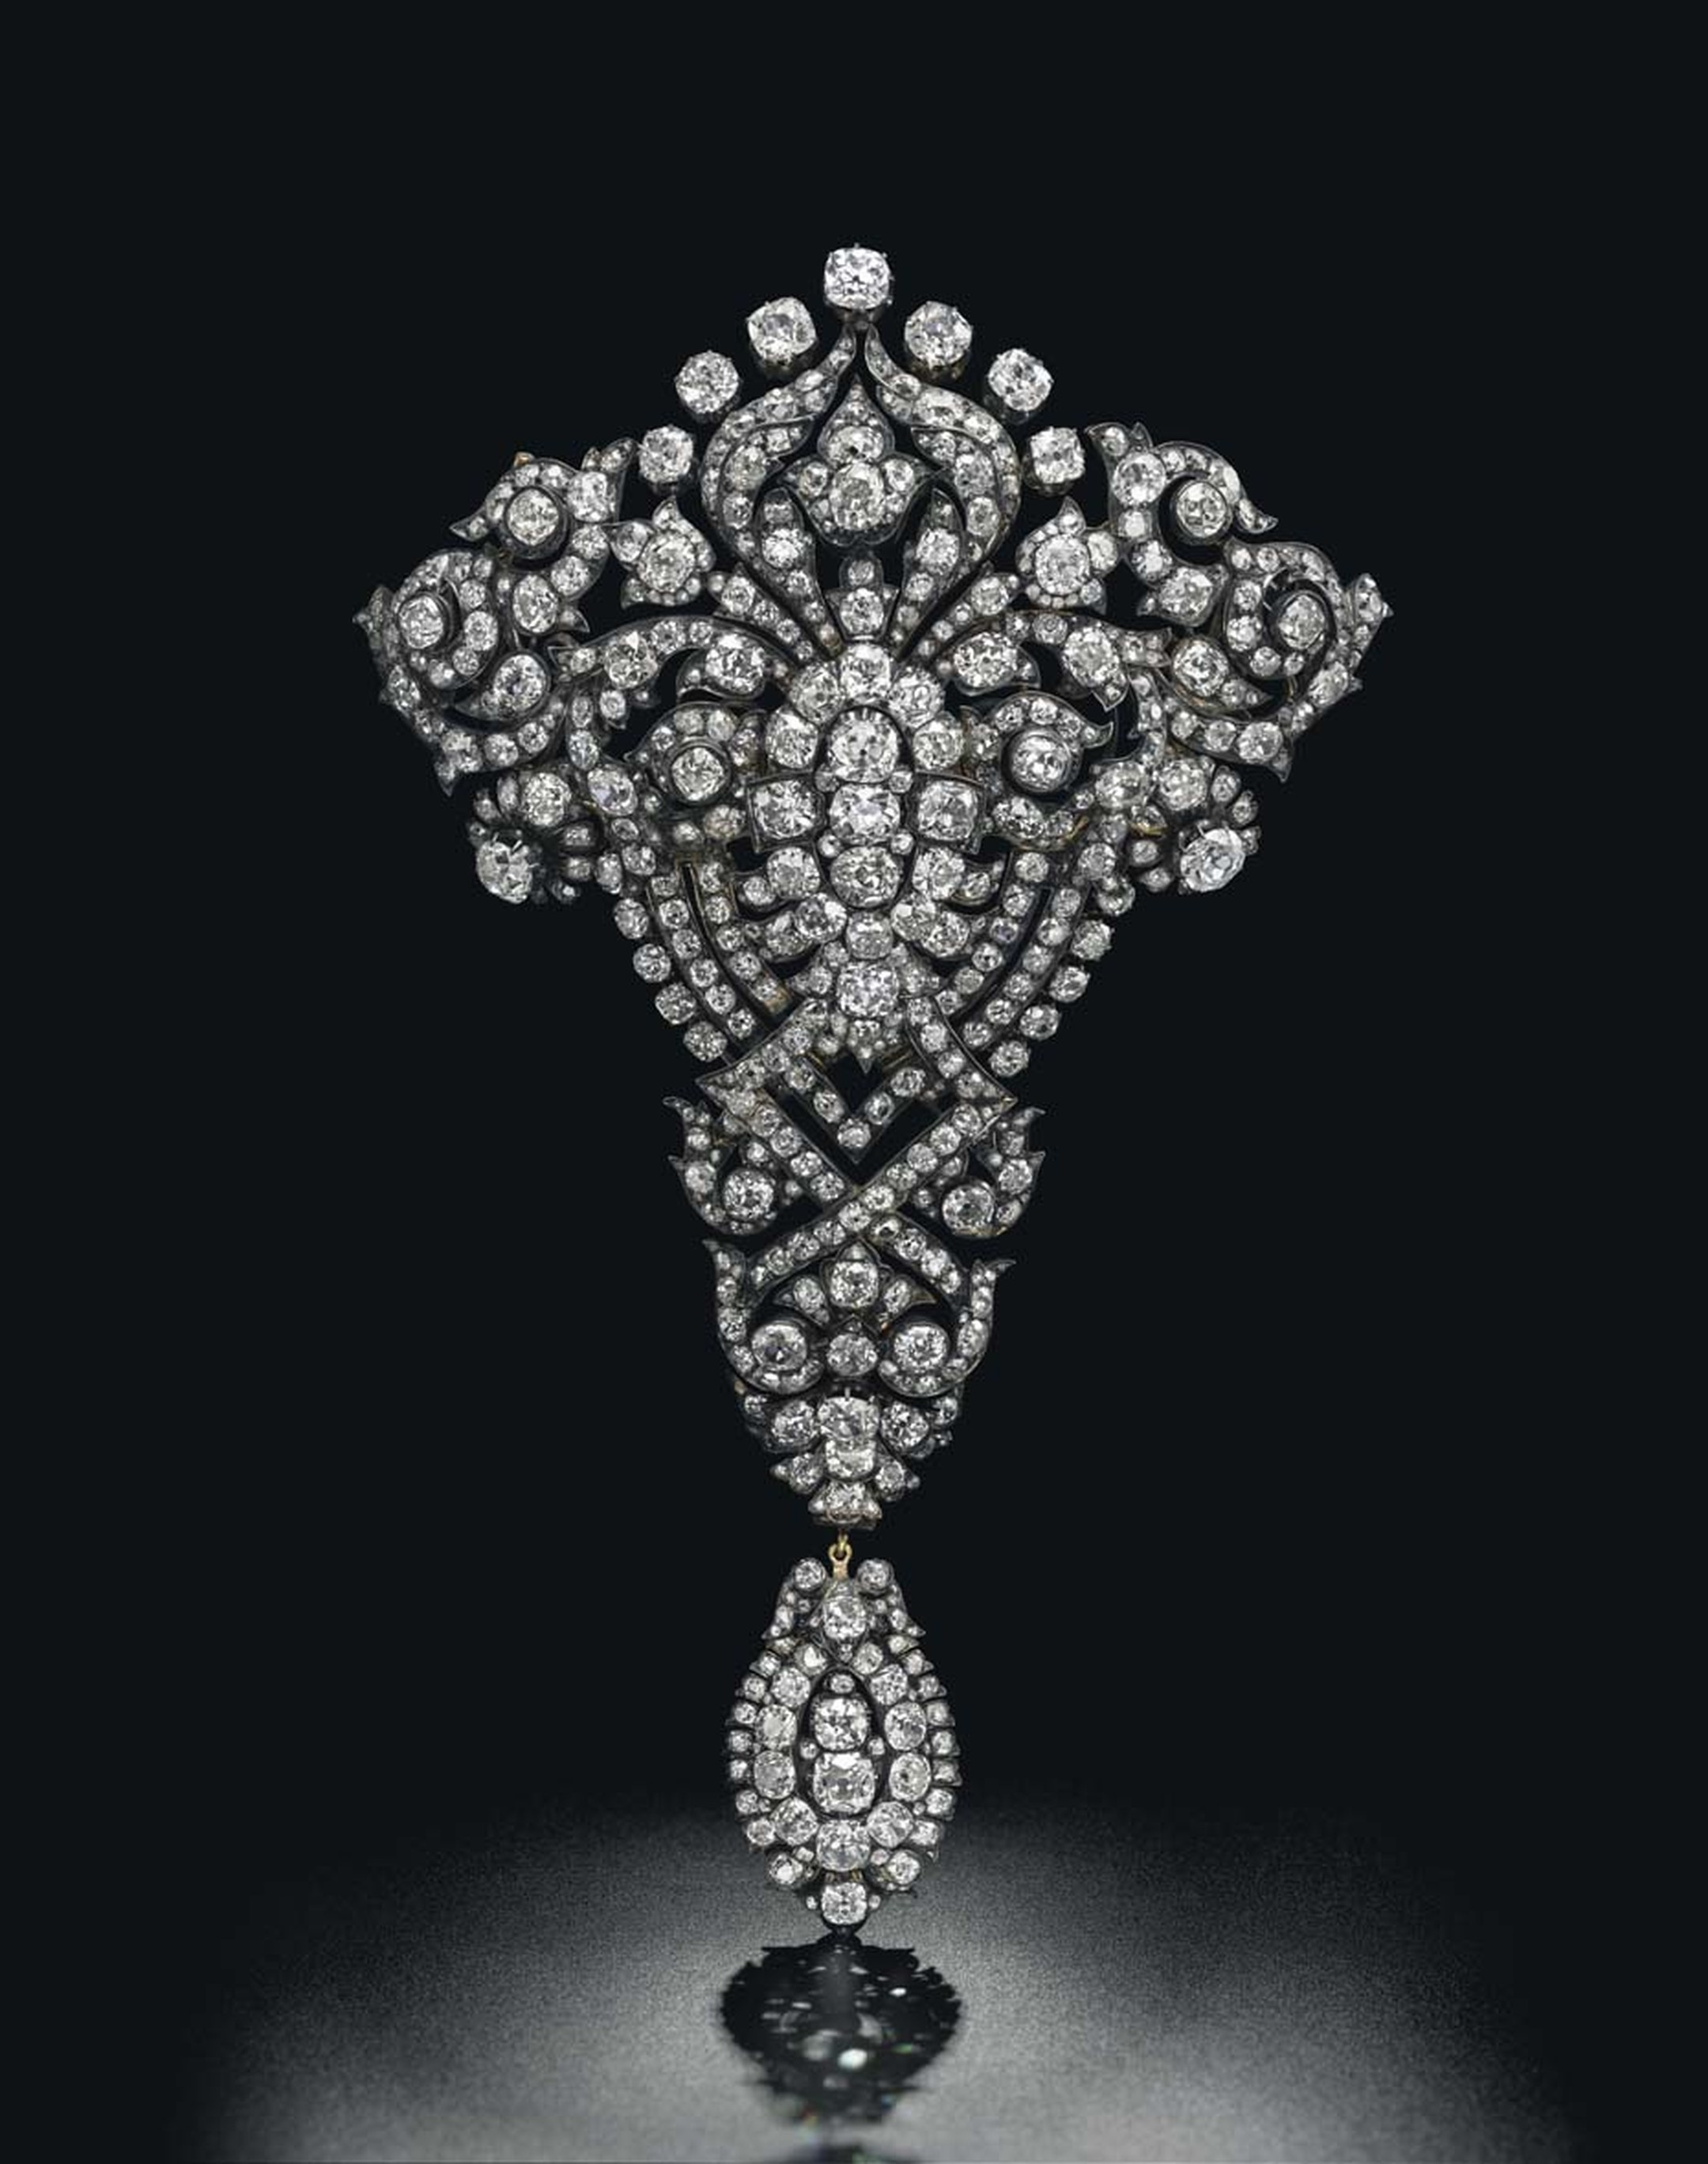 The spectacular Maria Christina Royal Devant-de-Corsage diamond brooch is expected to achieve $1.5-2 million at Christie's Magnificent Jewels sale in Geneva on 13 May 2015.